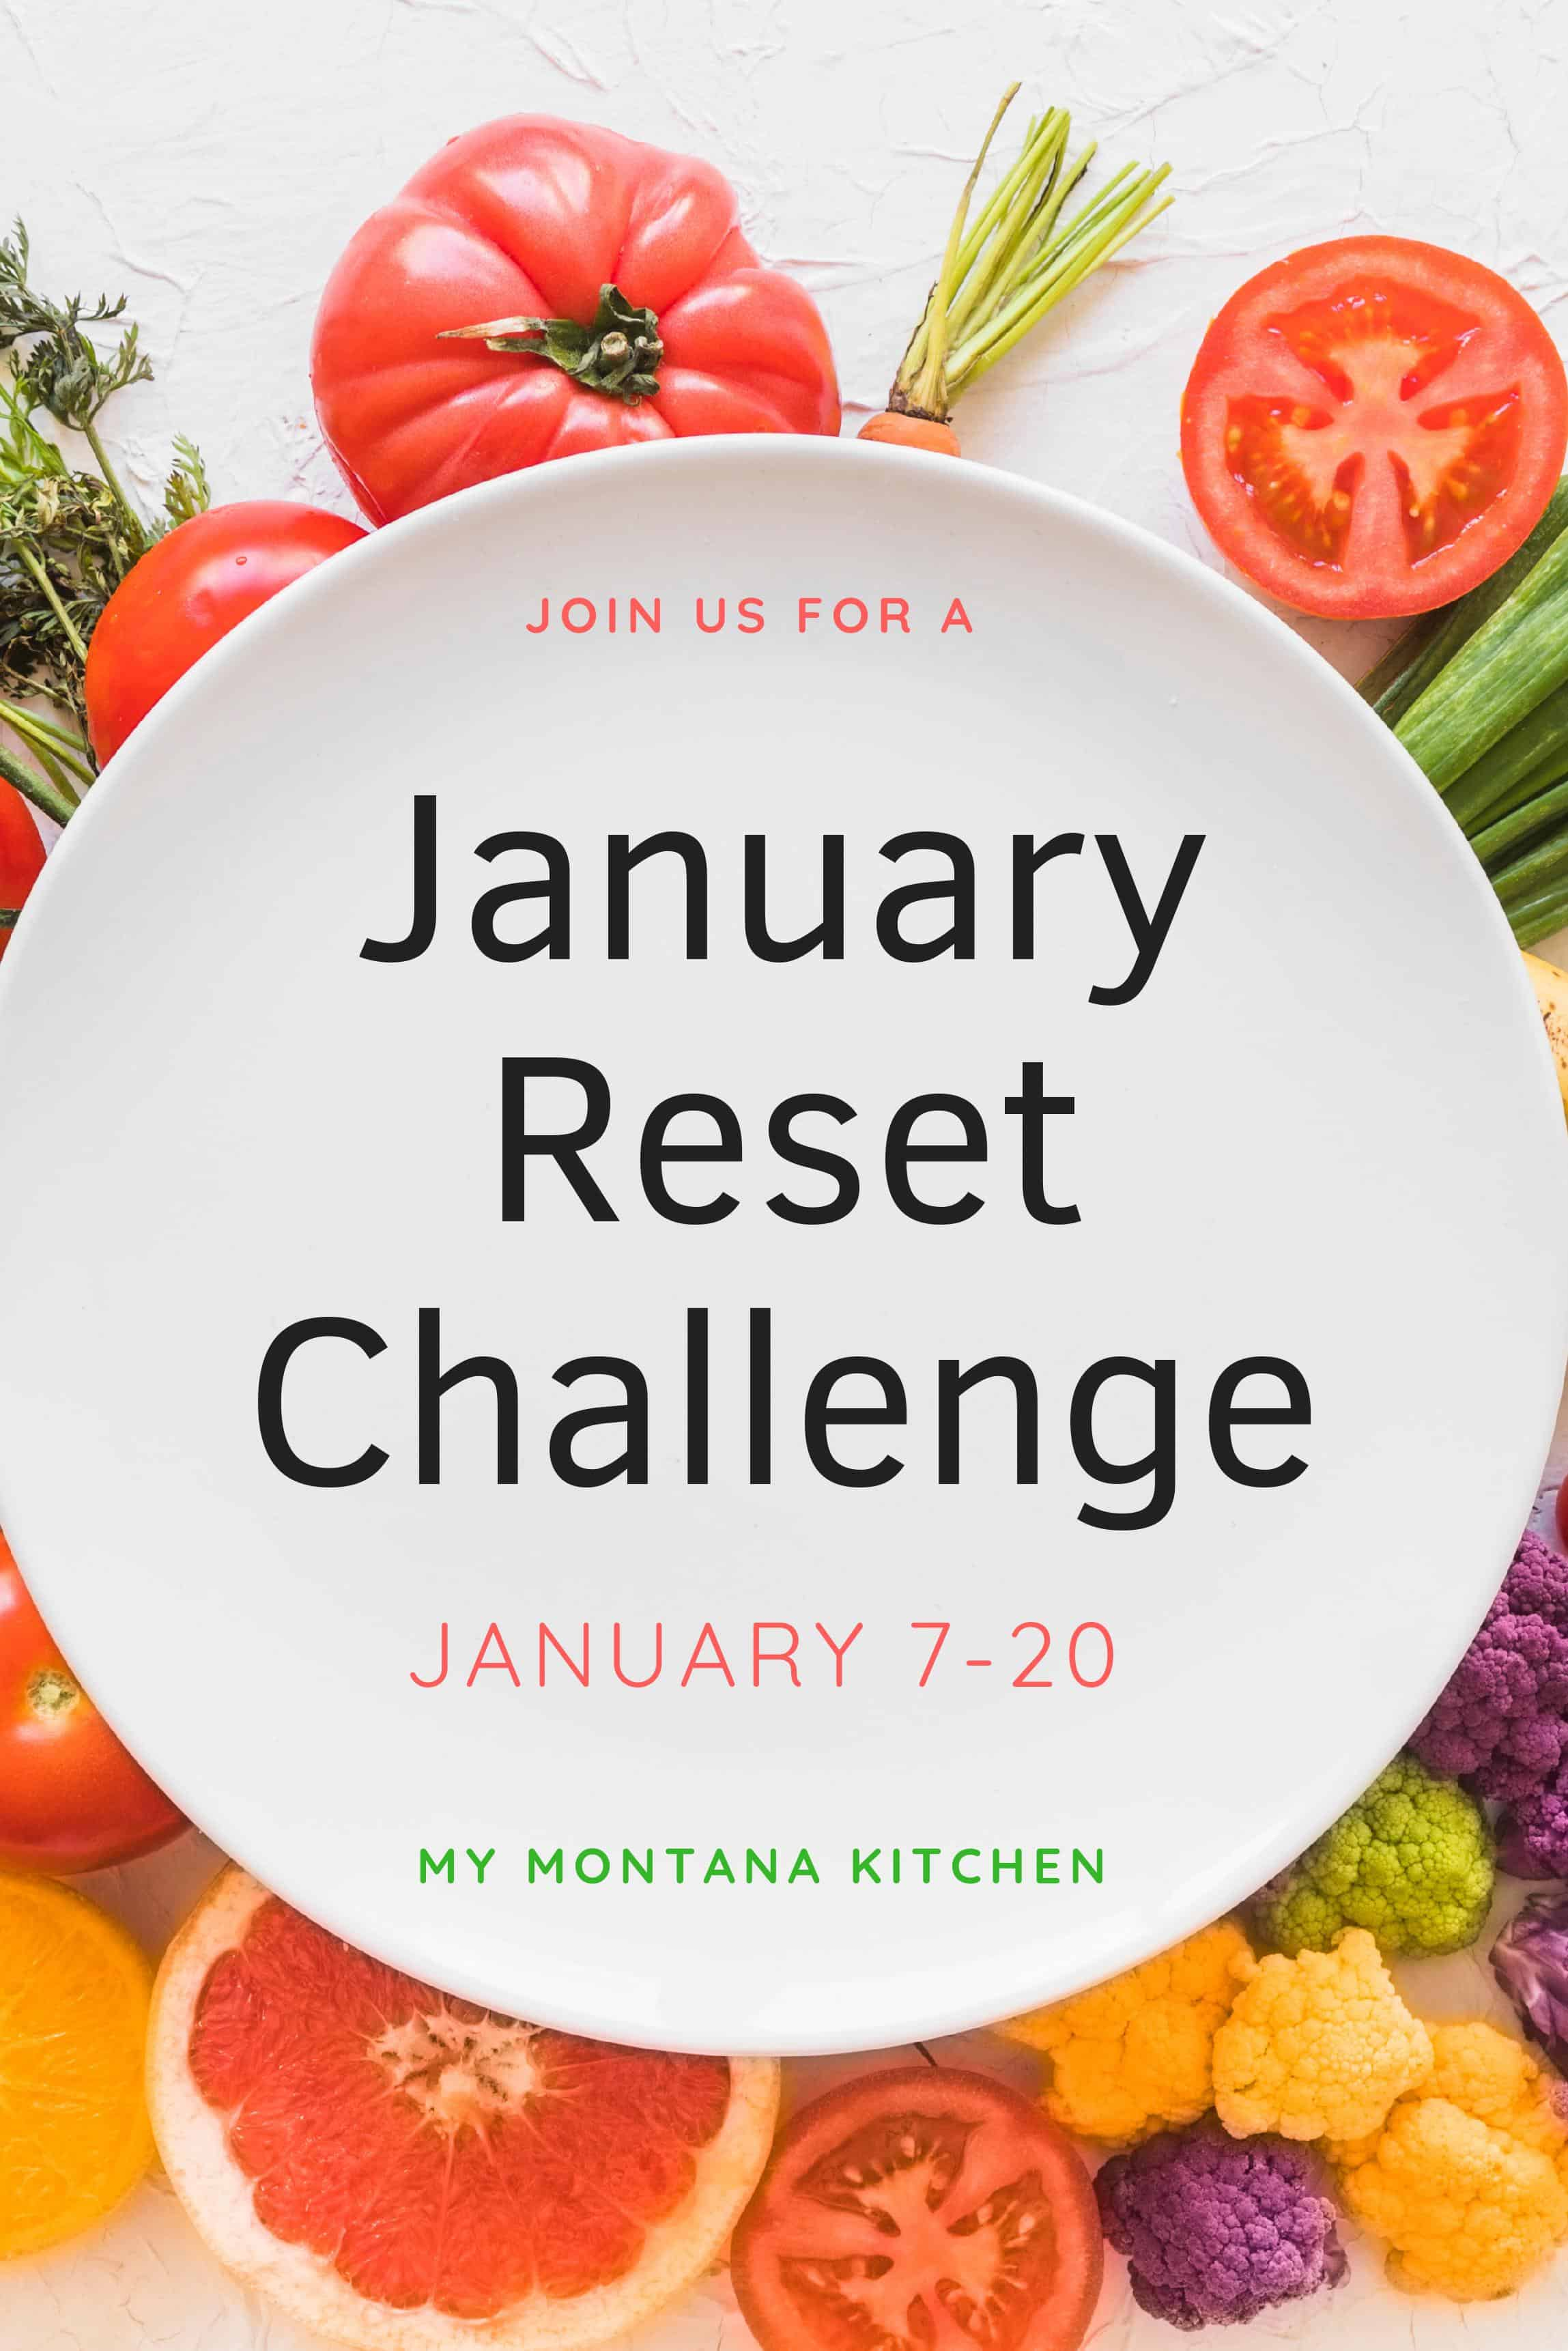 Need a reset after the Holidays, or just need some accountability sticking to the Trim Healthy Mama plan? Join the January Reset Challenge, a free 2 week challenge designed to help you stay on track and crush your goals! #trimhealthymama #thm #challenge #thmchallenge #januarychallenge #trimhealthymamachallenge #thmchallenge